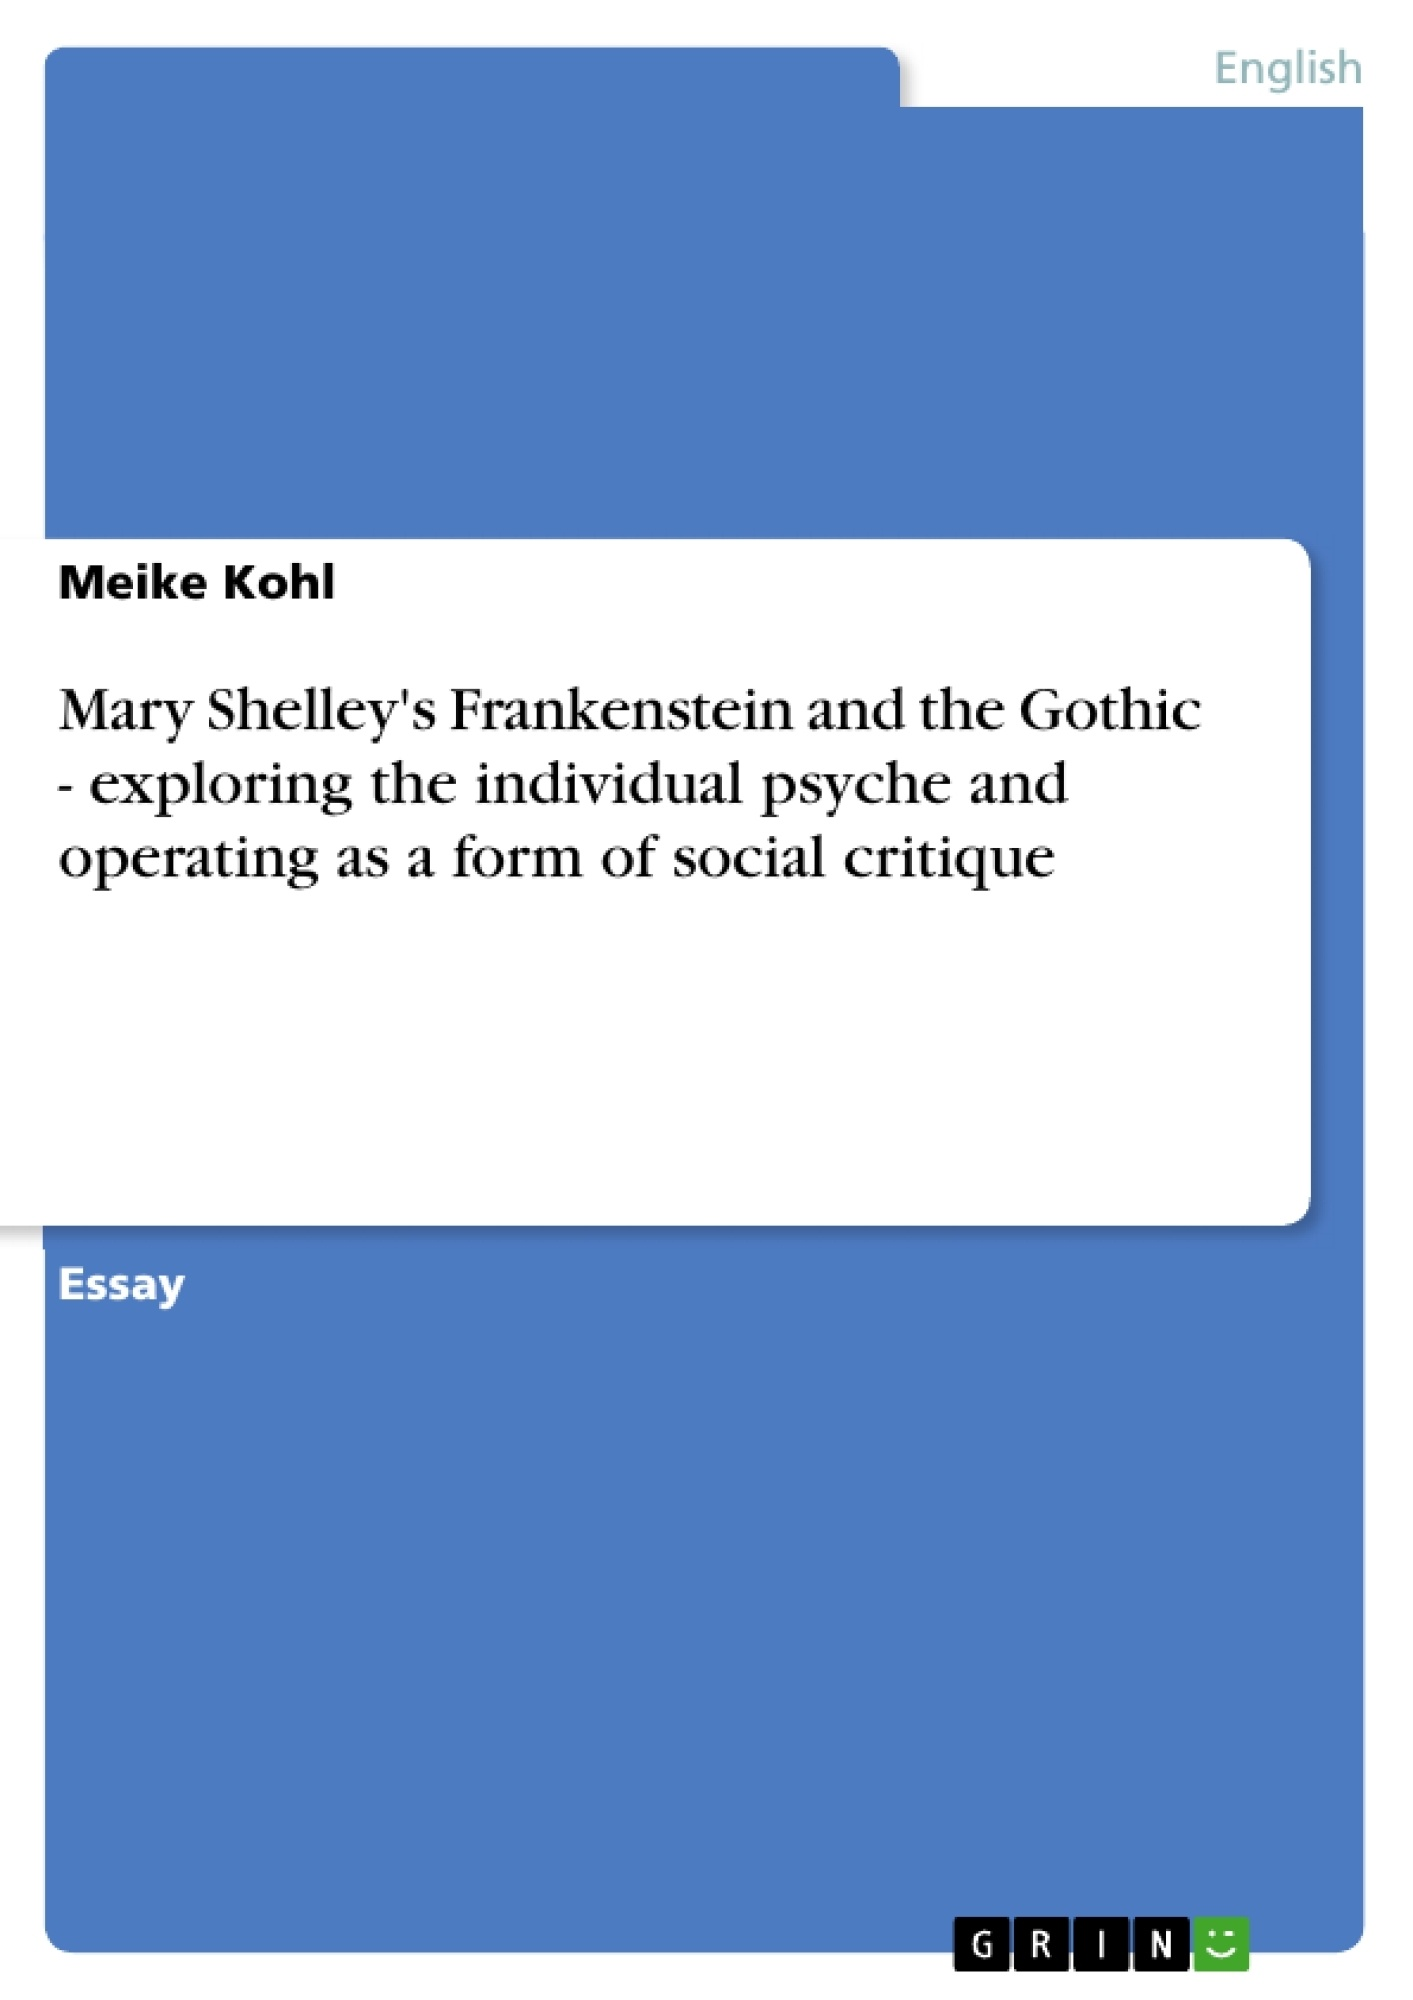 Title: Mary Shelley's Frankenstein and the Gothic - exploring the individual psyche and operating as a form of social critique